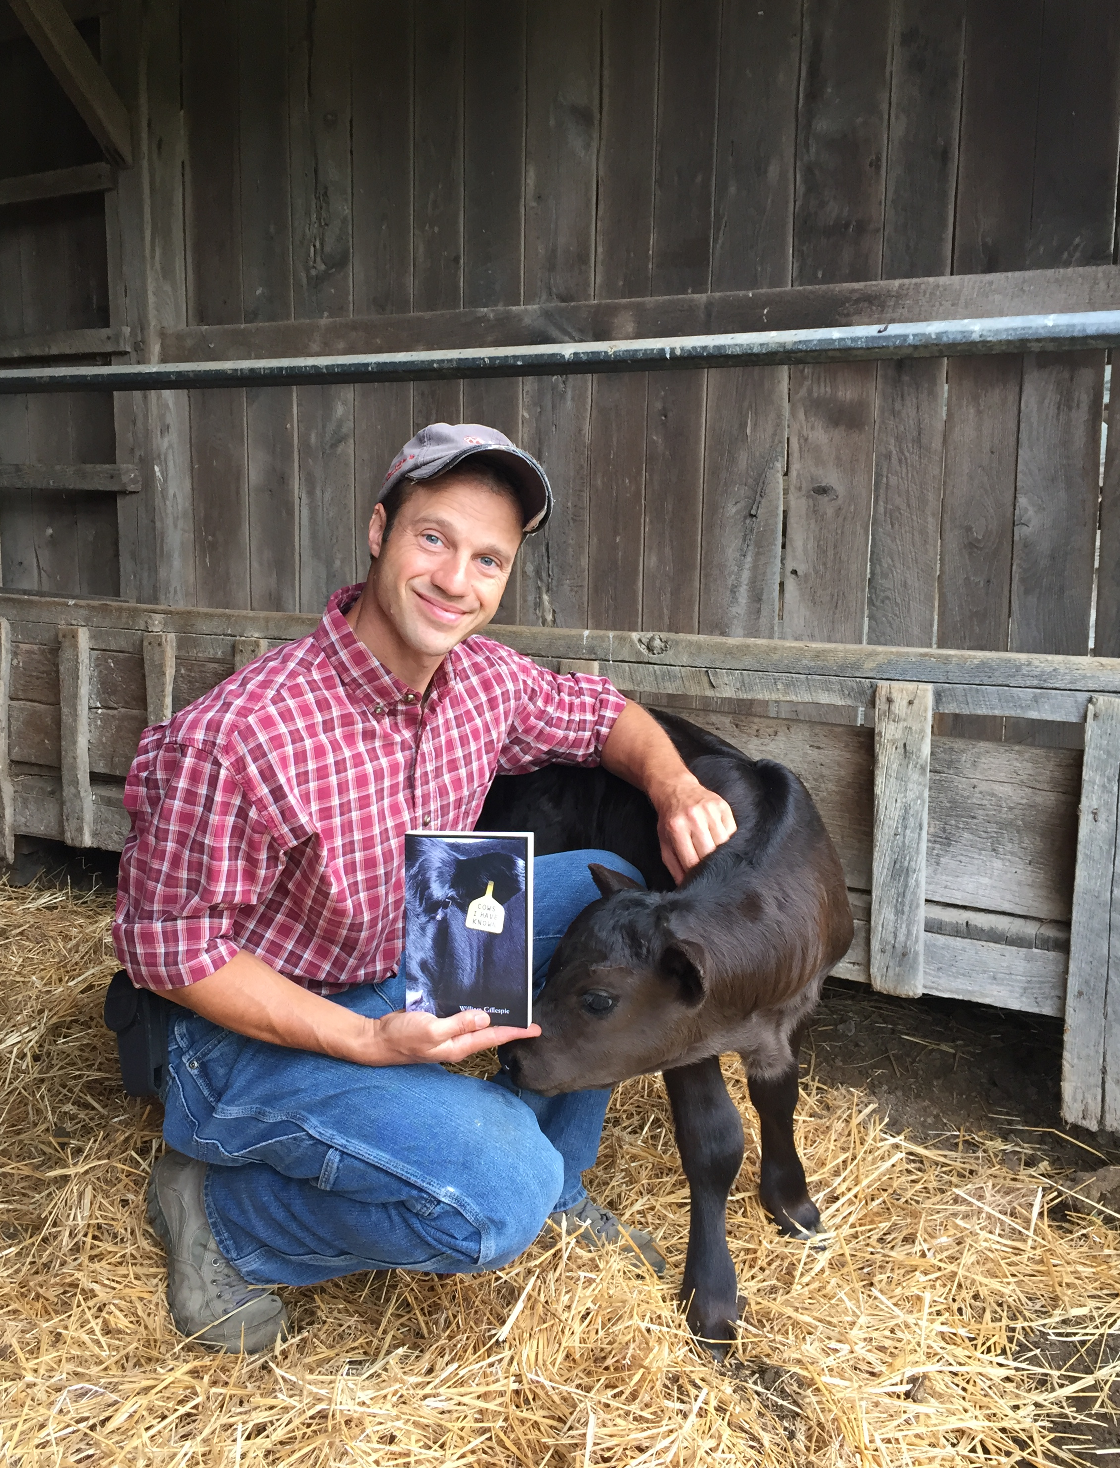 """Meet Local Author of """"Cows I Have Known"""" at the Suzette Brumleve Memorial Effingham Public Library"""